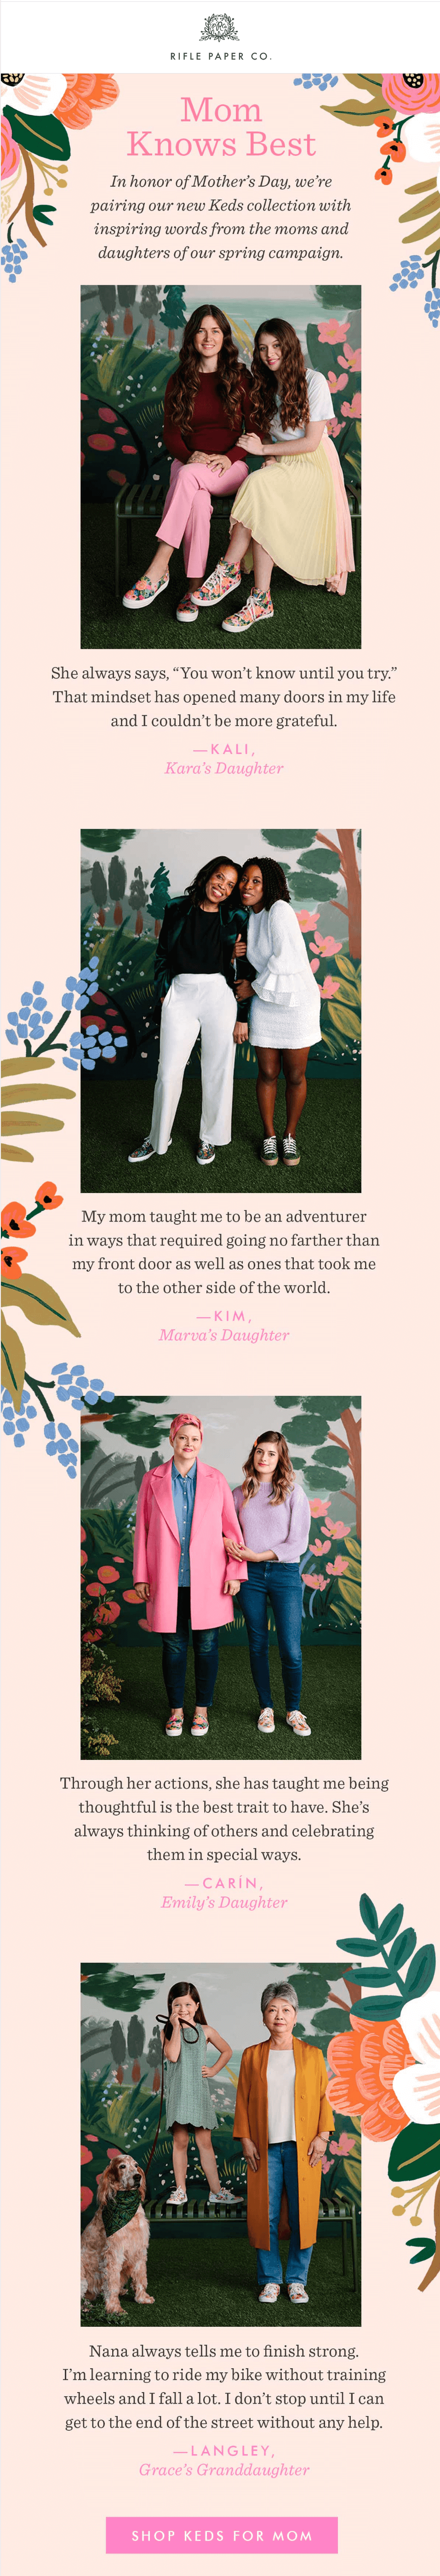 Rifle Paper Co. Mother's Day emails